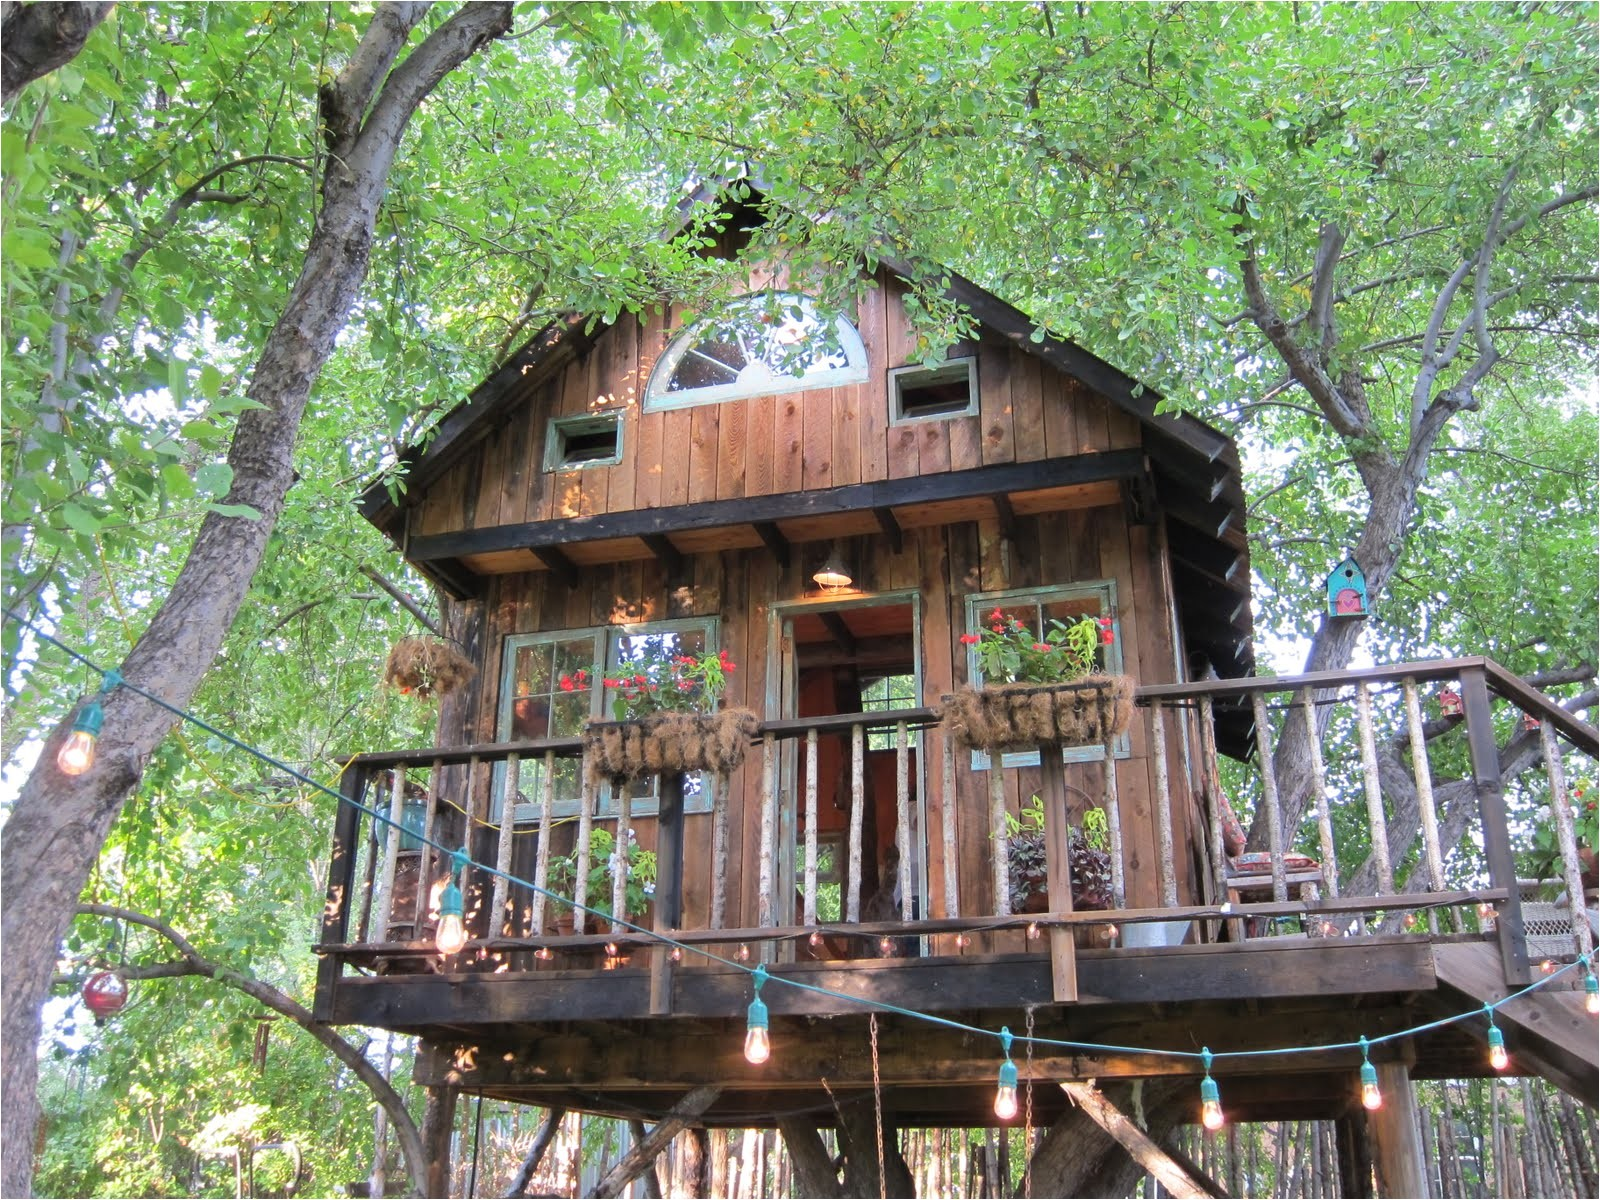 large tree houses with classy lighting design for large tree houses for sale